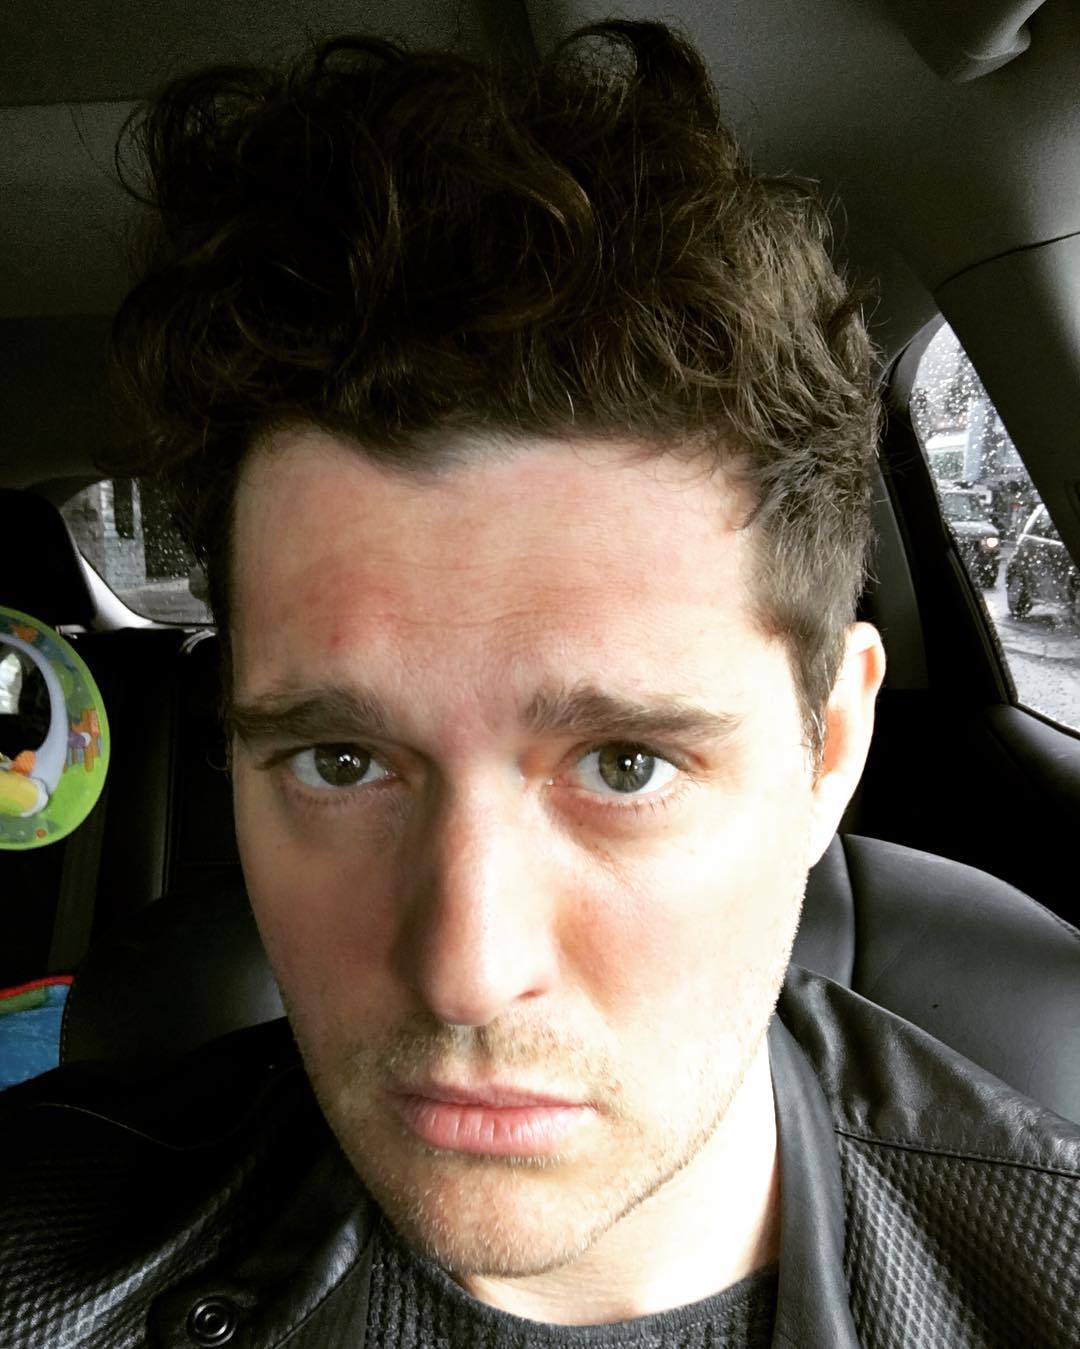 Michael Bublé Instagram: A tbt to 4 minutes ago when I realized How badly I need a haircut.    ...